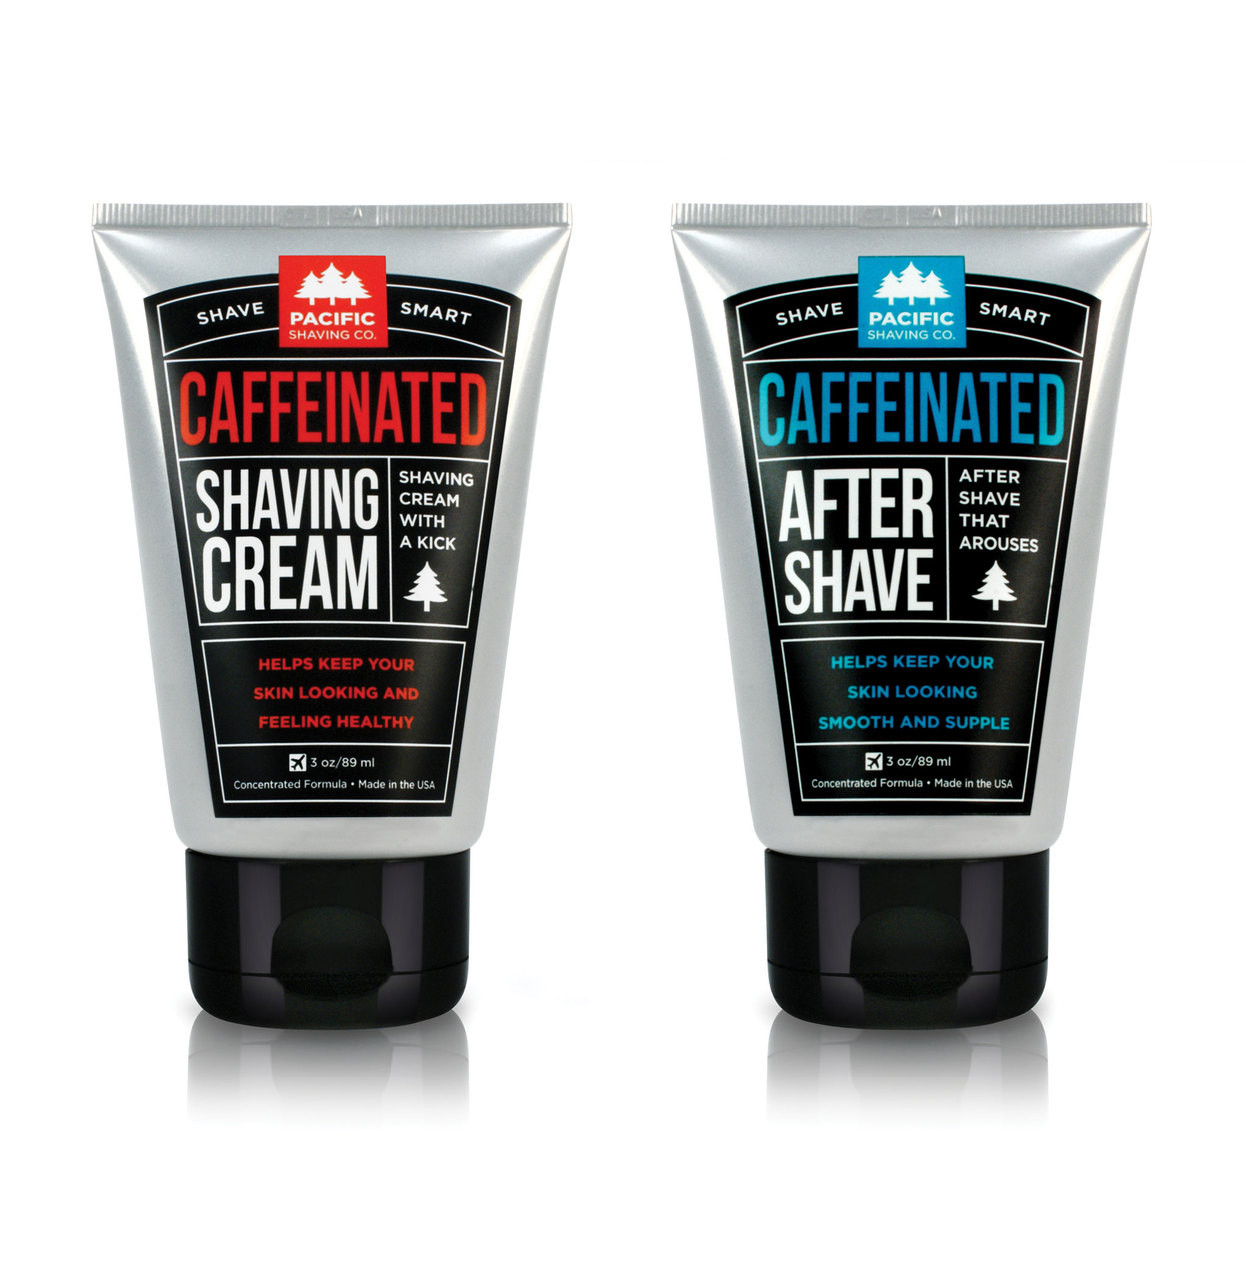 Caffeinated Shaving Set by Pacific Shaving Company. This outstanding aftershave moisturizer utilizes the many benefits of naturally-derived caffeine to help liven up your morning shave routine. It will give you an exceptional shave, help reduce the appearance of redness, and keep your skin looking and feeling healthy all day. It may not replace your morning coffee, but it will give a little extra kick to your morning routine. A little goes a long way.